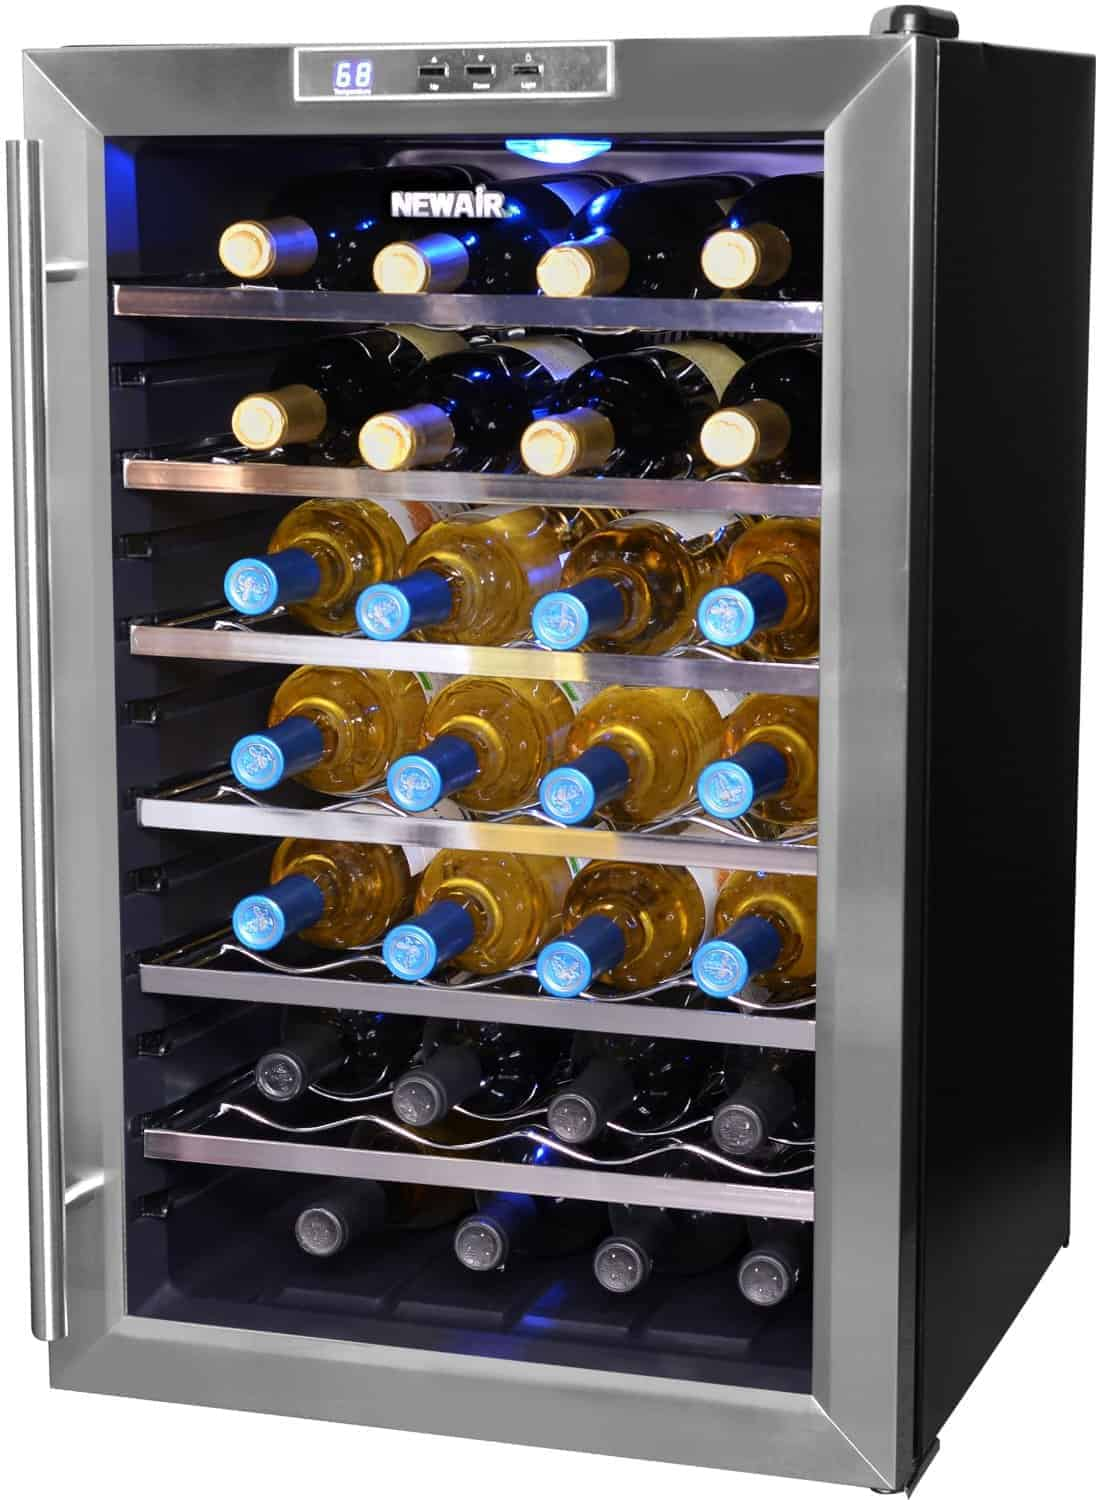 chiller newair bottle shop pd lowes cooler wine stainless steel countertop com at